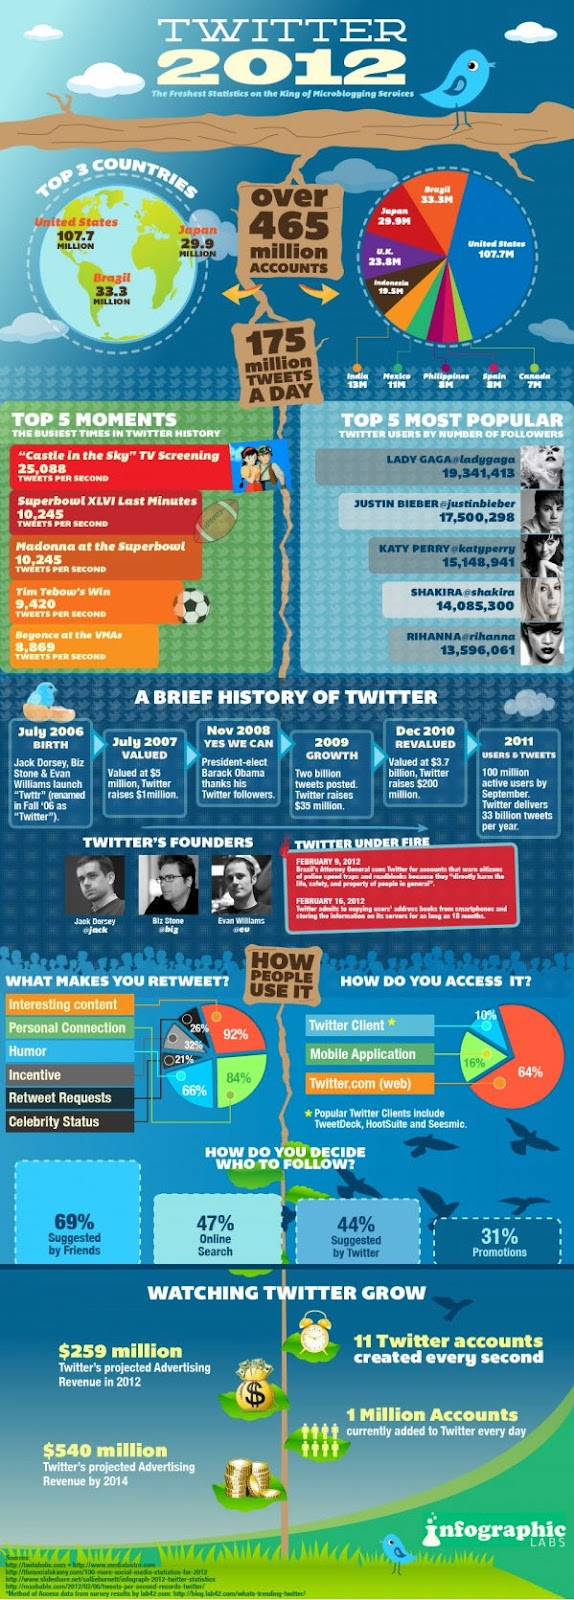 infographic on twitter